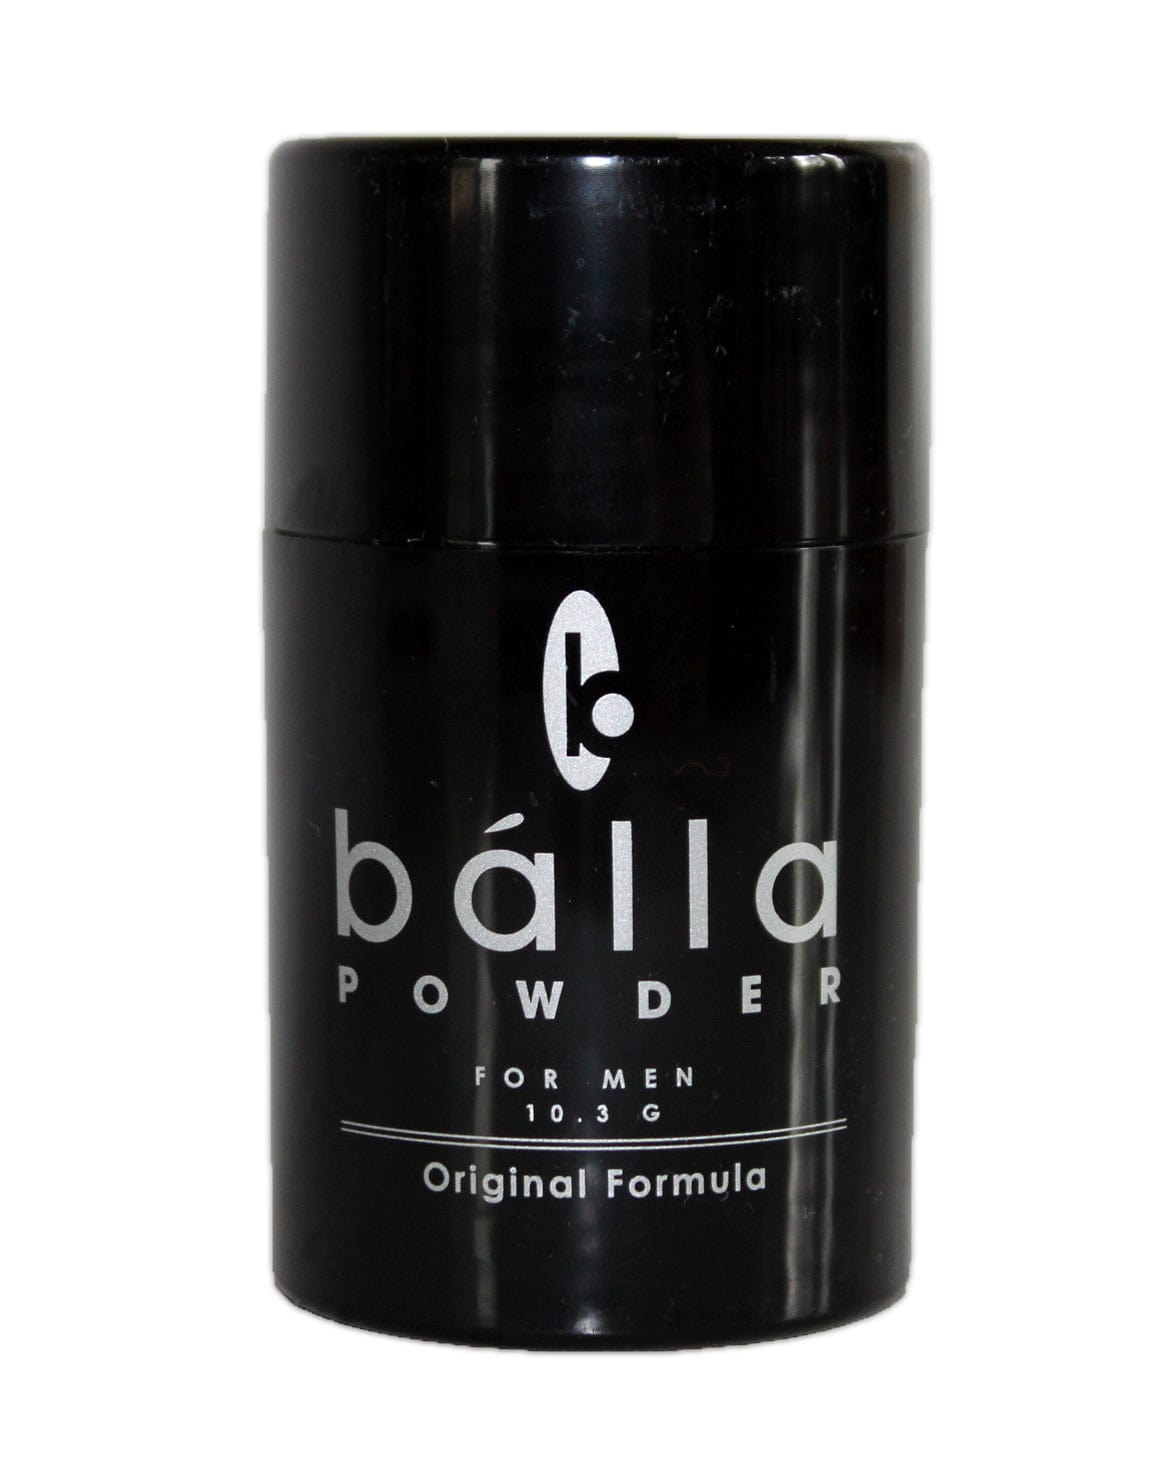 Balla Travel Size Original Formula Body Powder